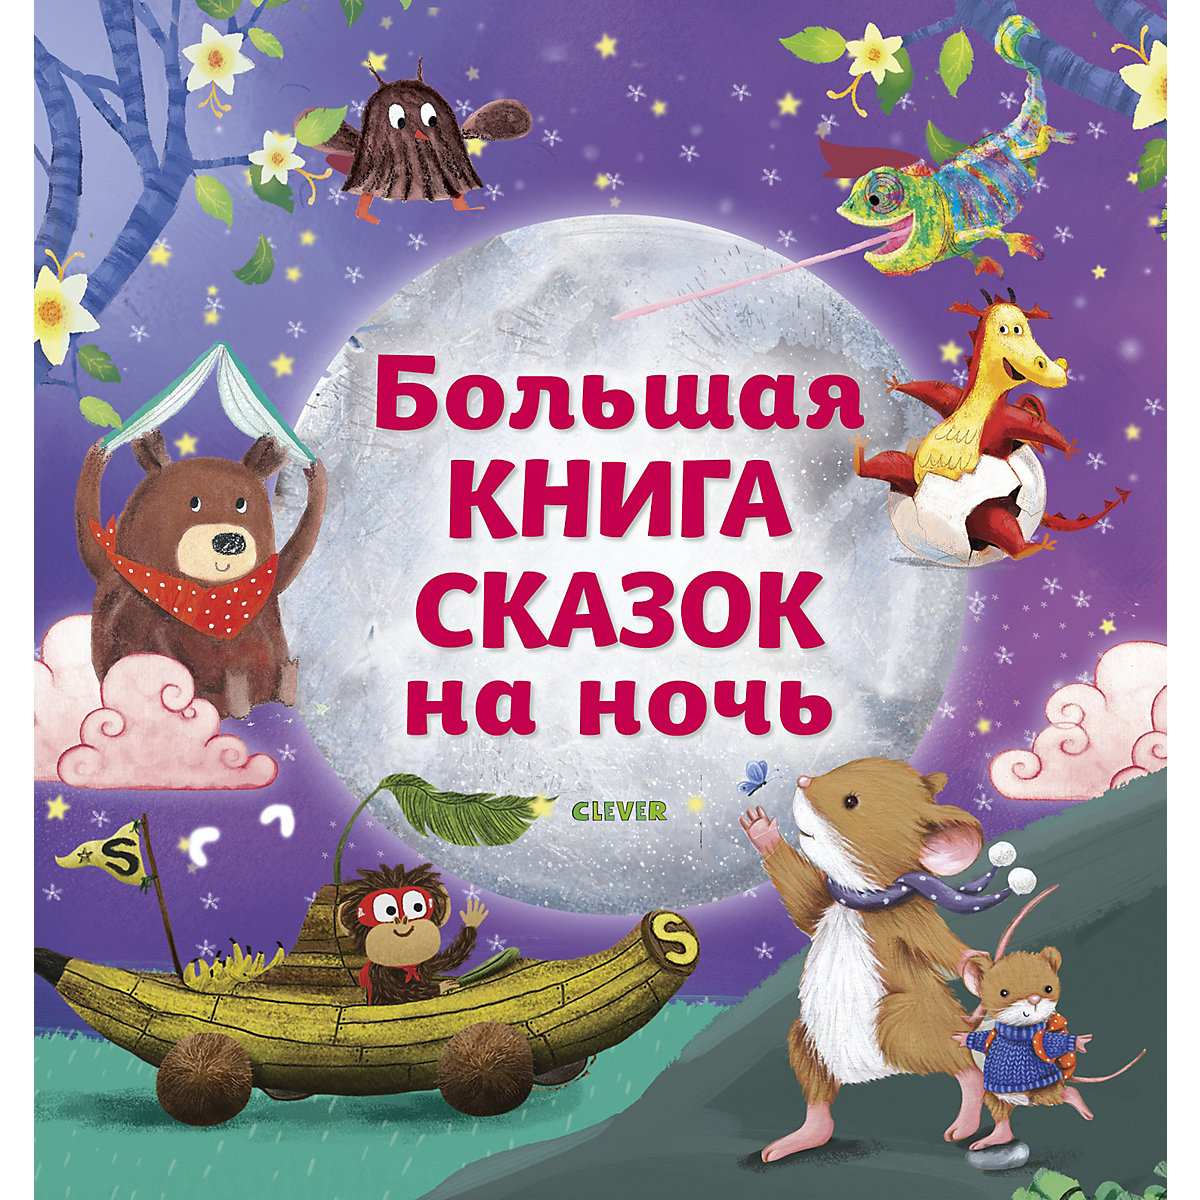 Books CLEVER 10262576 Children Education Encyclopedia Alphabet Dictionary Book For Baby MTpromo